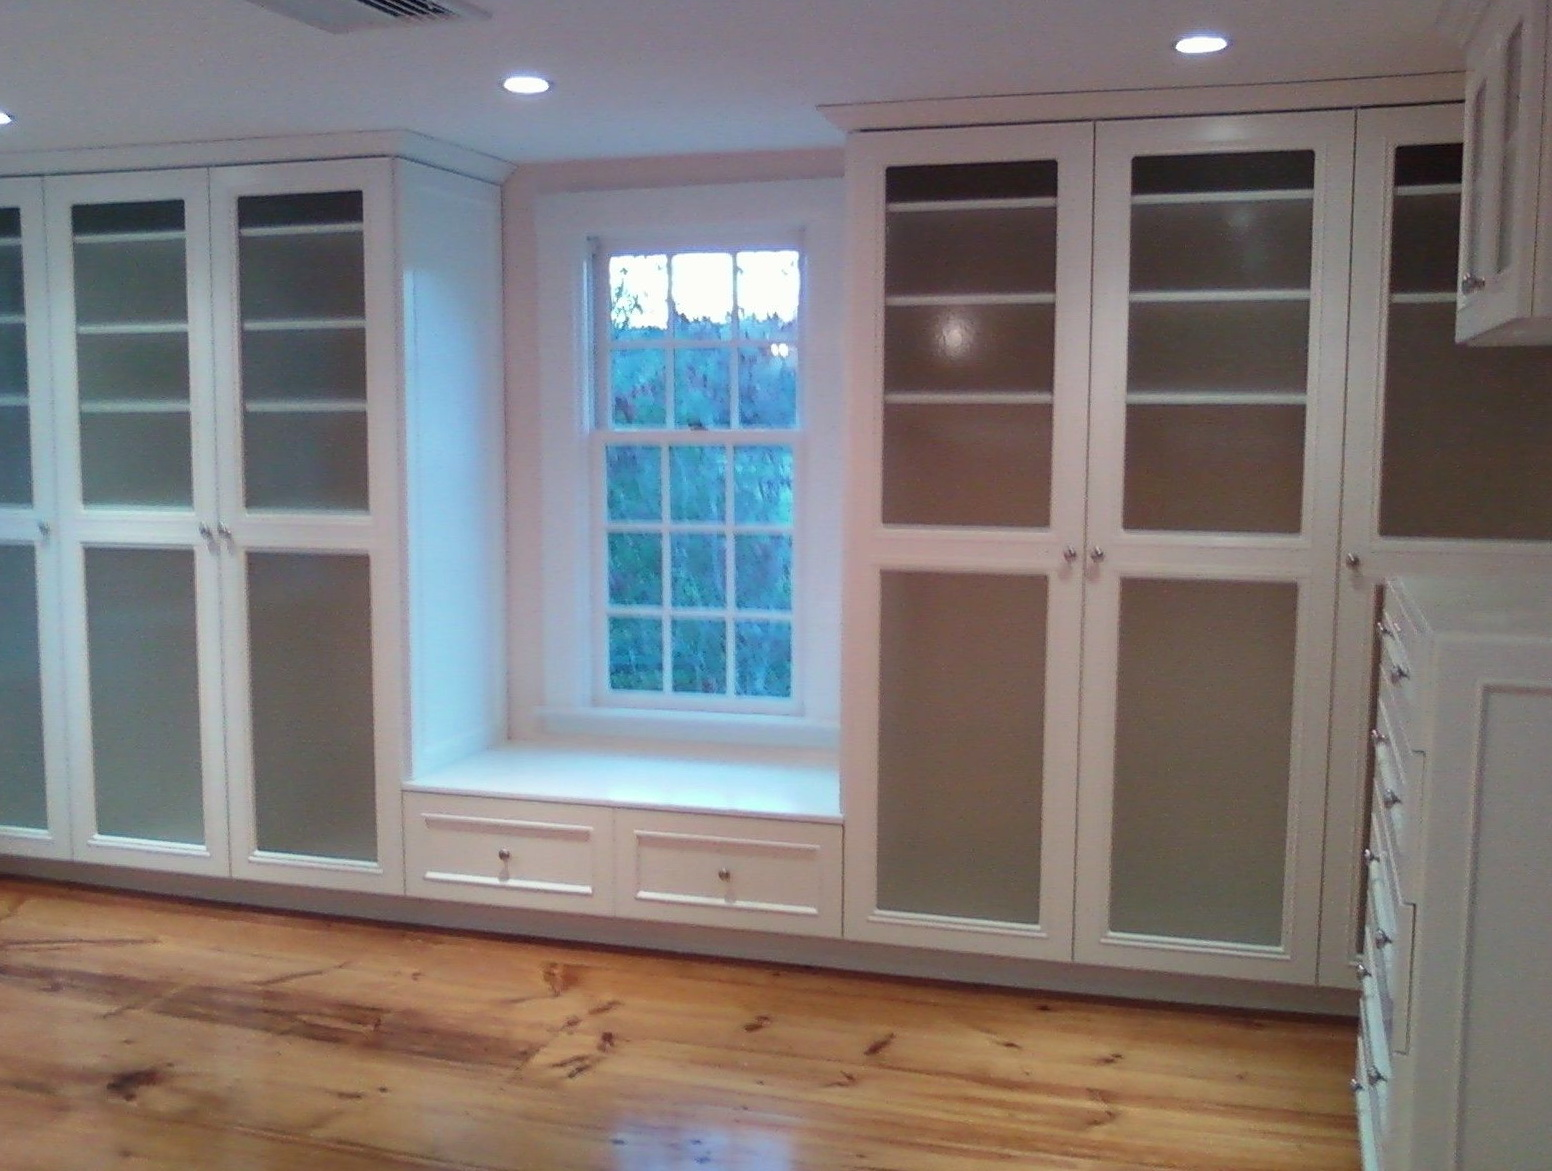 Built in closet systems ideas home design ideas - Built in closet systems ideas ...